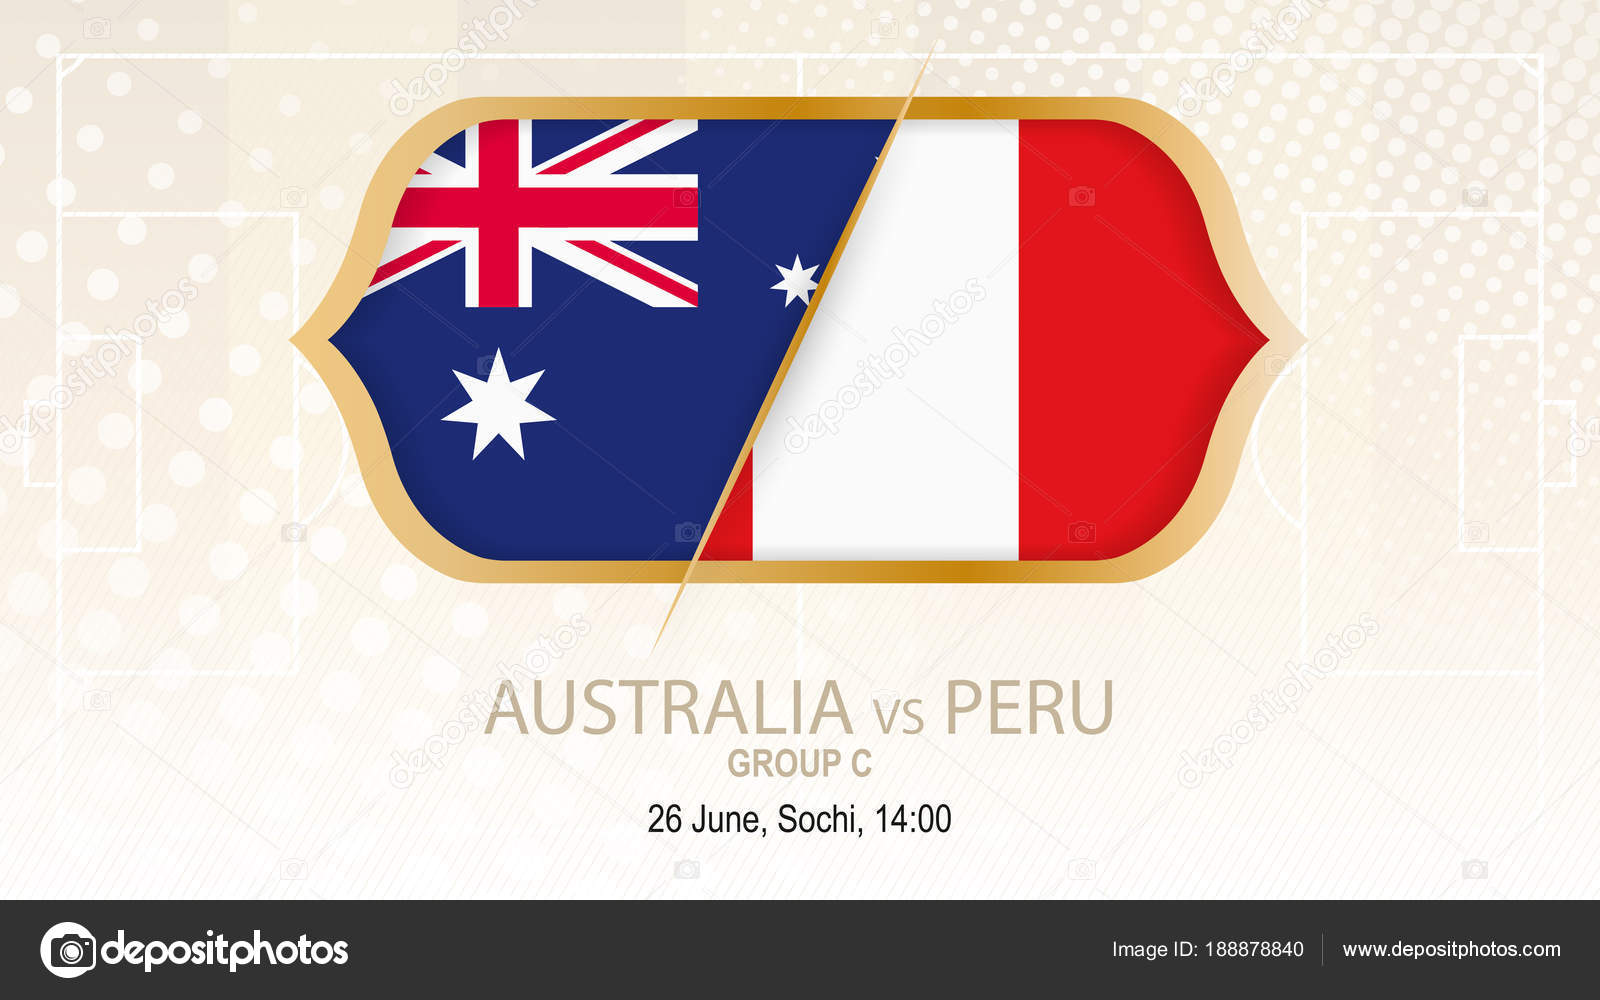 Australia Vs Peru Group C Football Competition Sochi On Beige Soccer Background Vector By Boldg